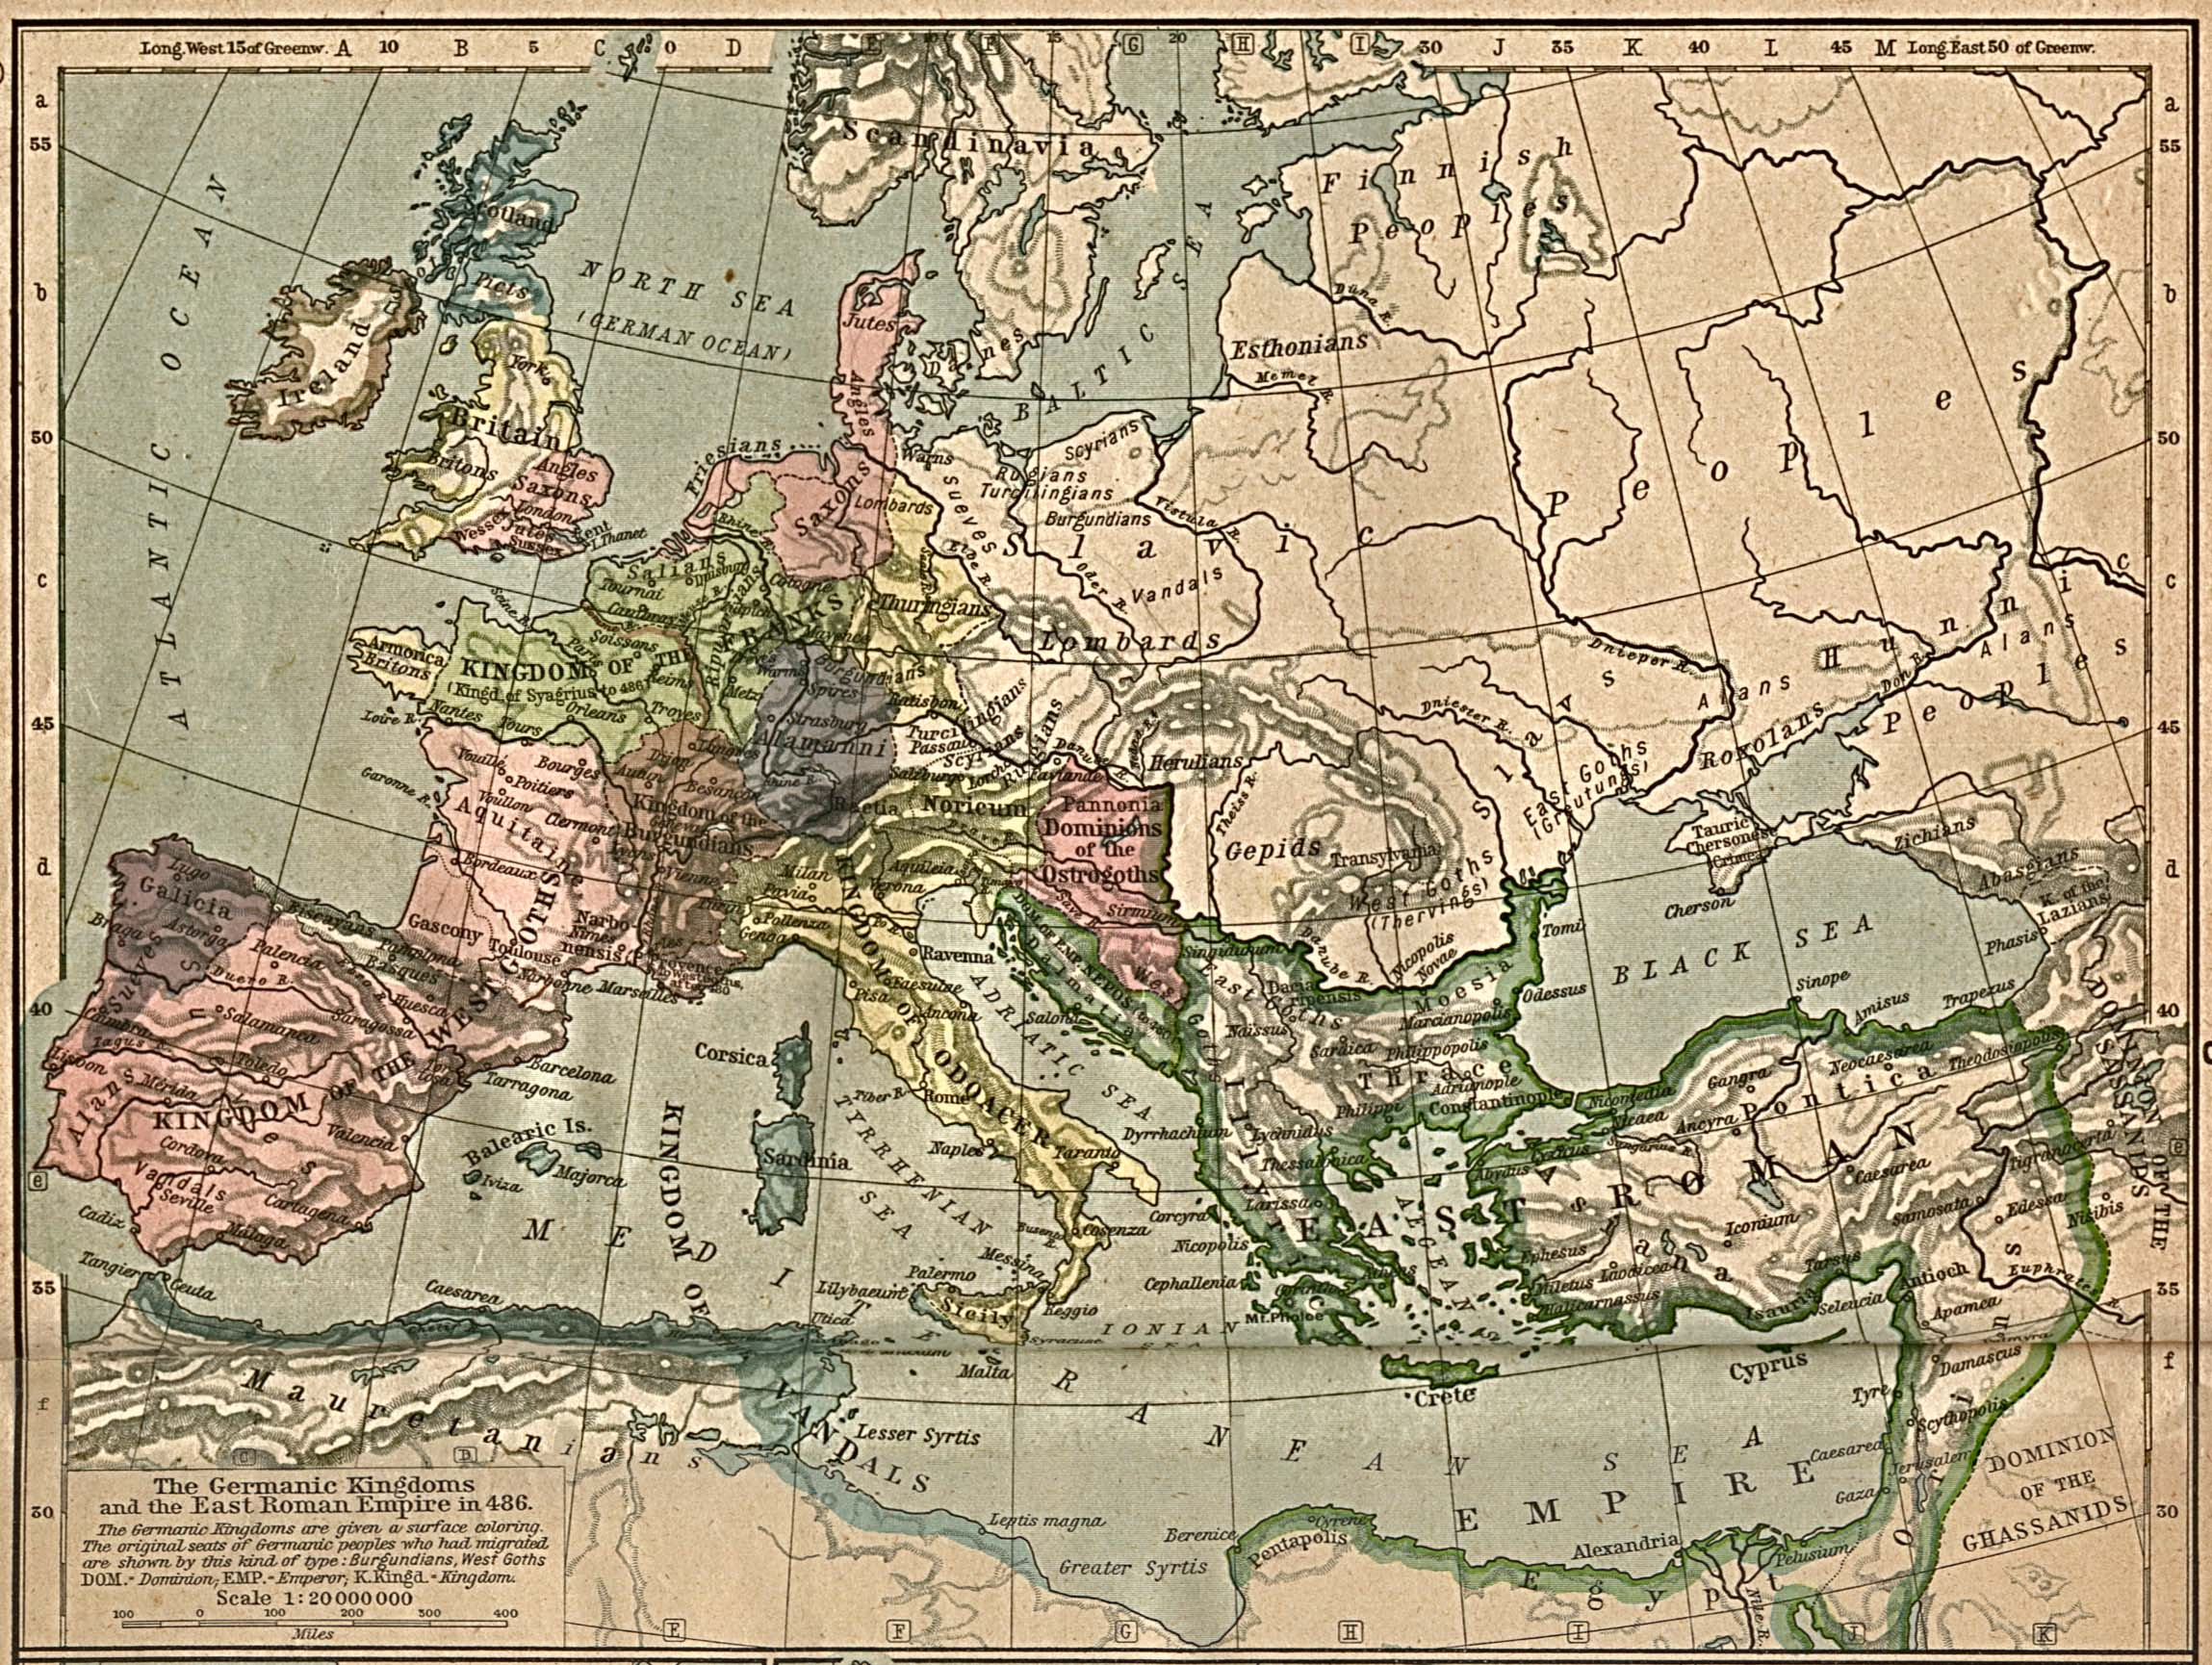 The Germanic Kingdoms and the East Roman Empire 486